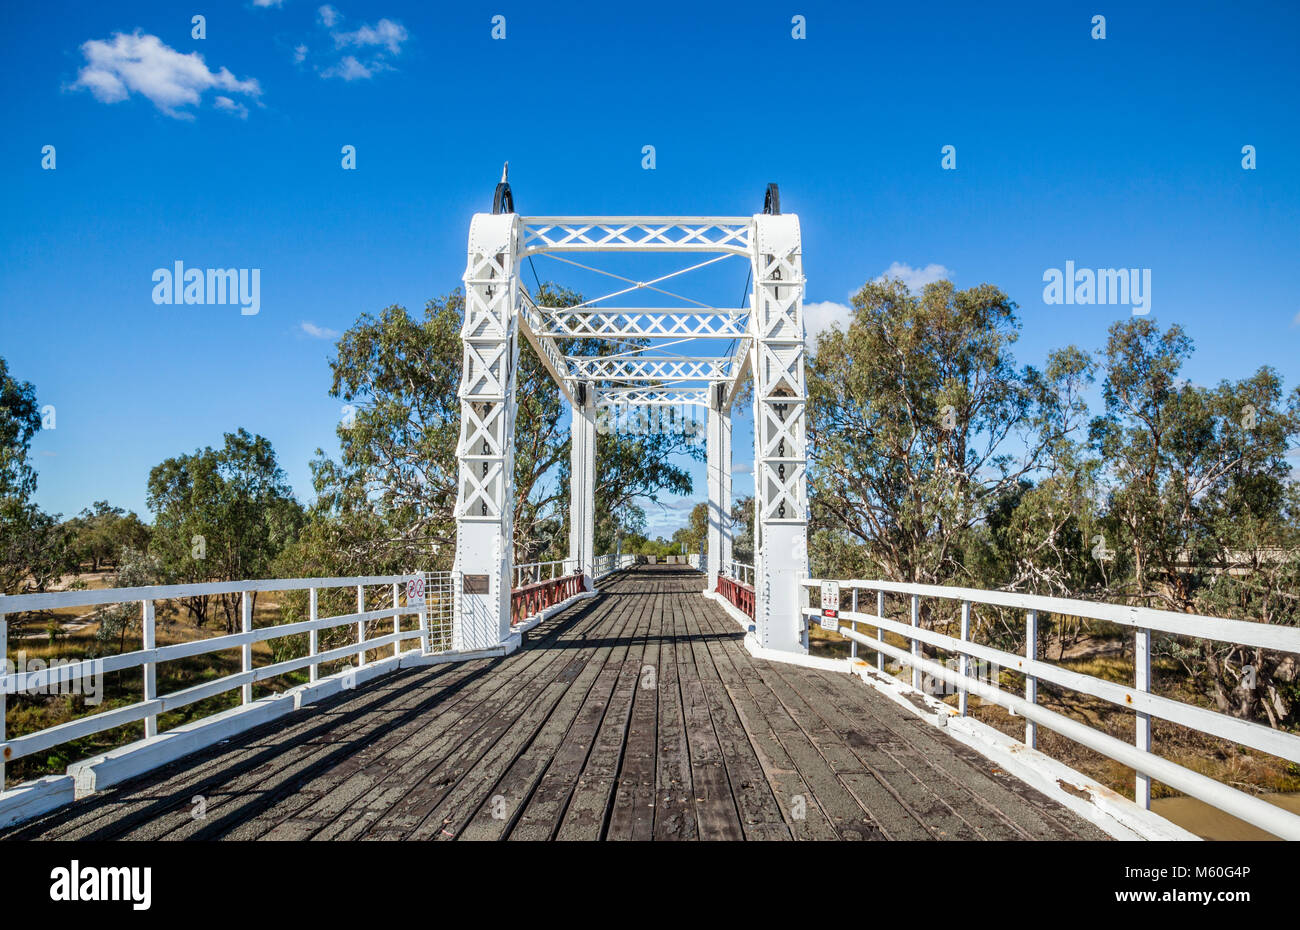 view of the Bourke Bridge over the Darling River at North Bourke, North West New South Wales, Australia. The old - Stock Image